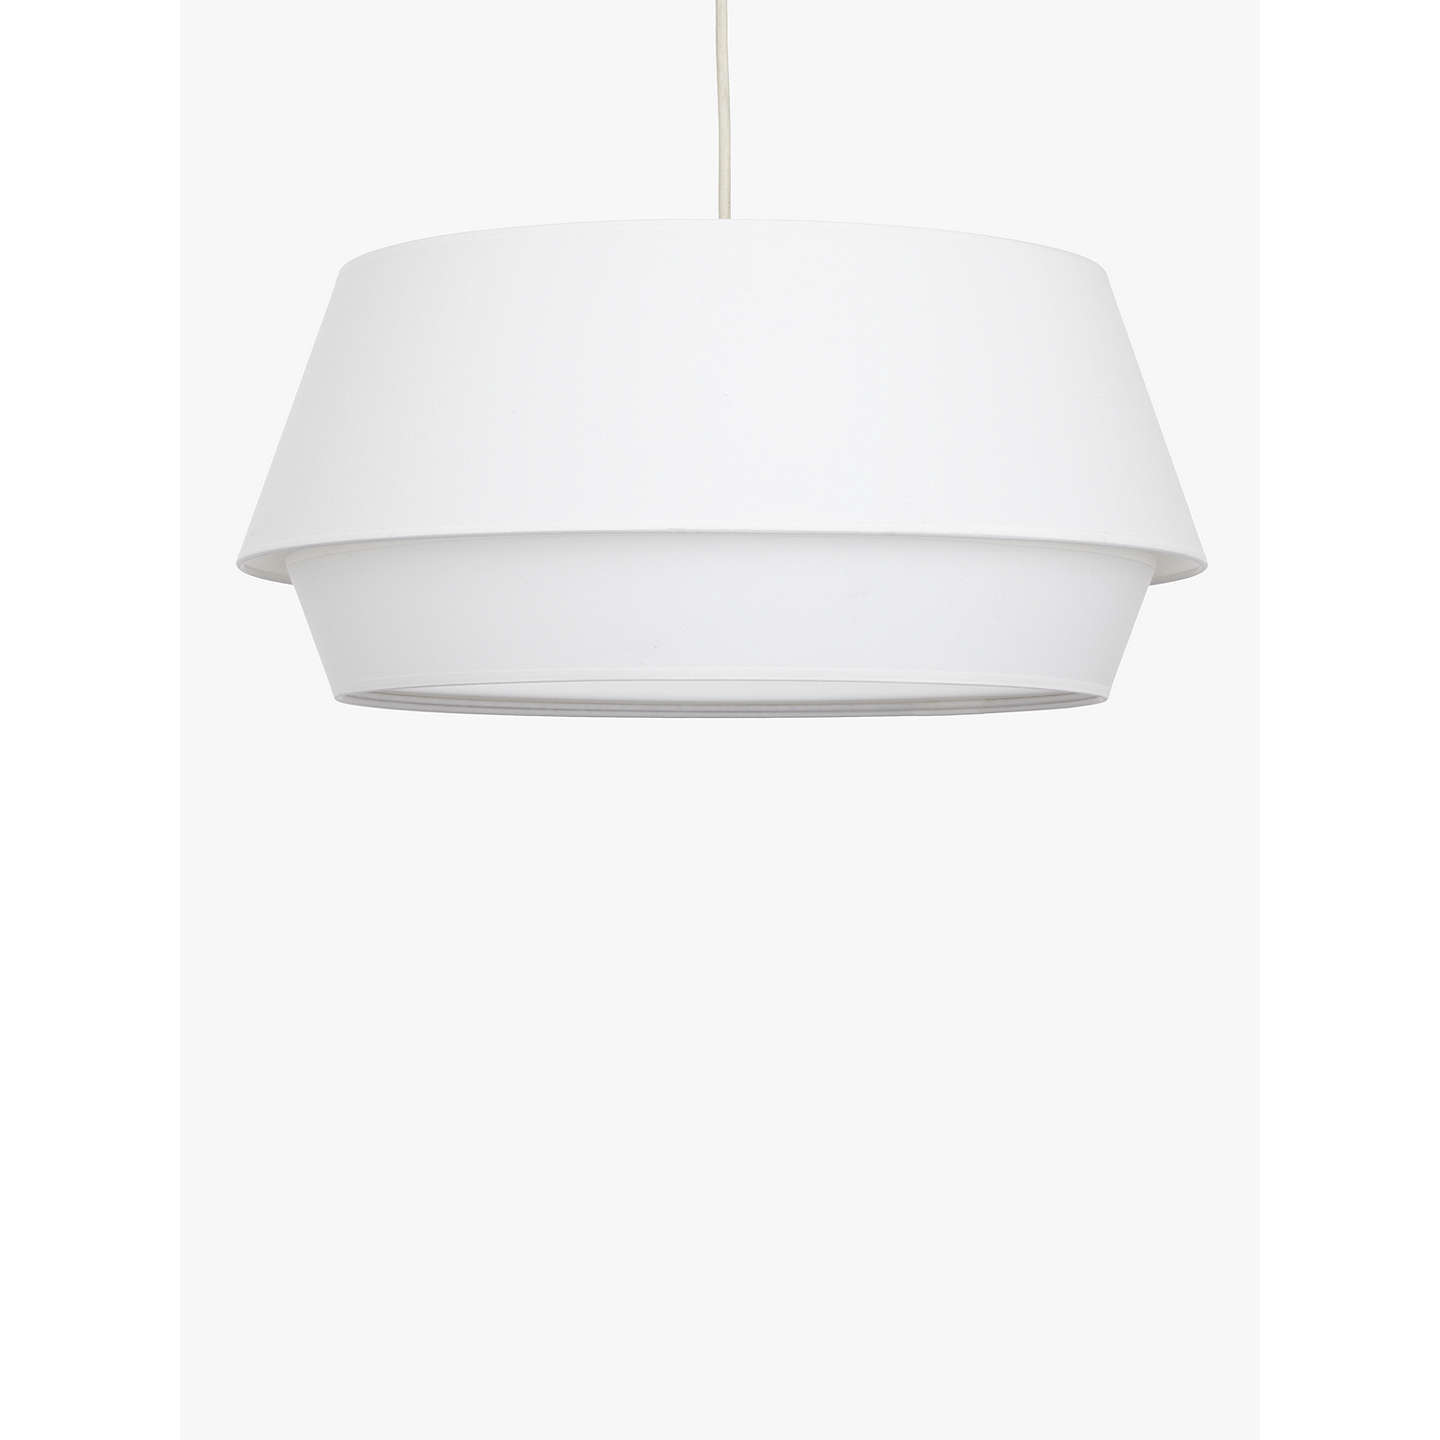 BuyHouse by John Lewis Lisbeth Easy-to-Fit Ceiling Shade, White, 50cm Online at johnlewis.com